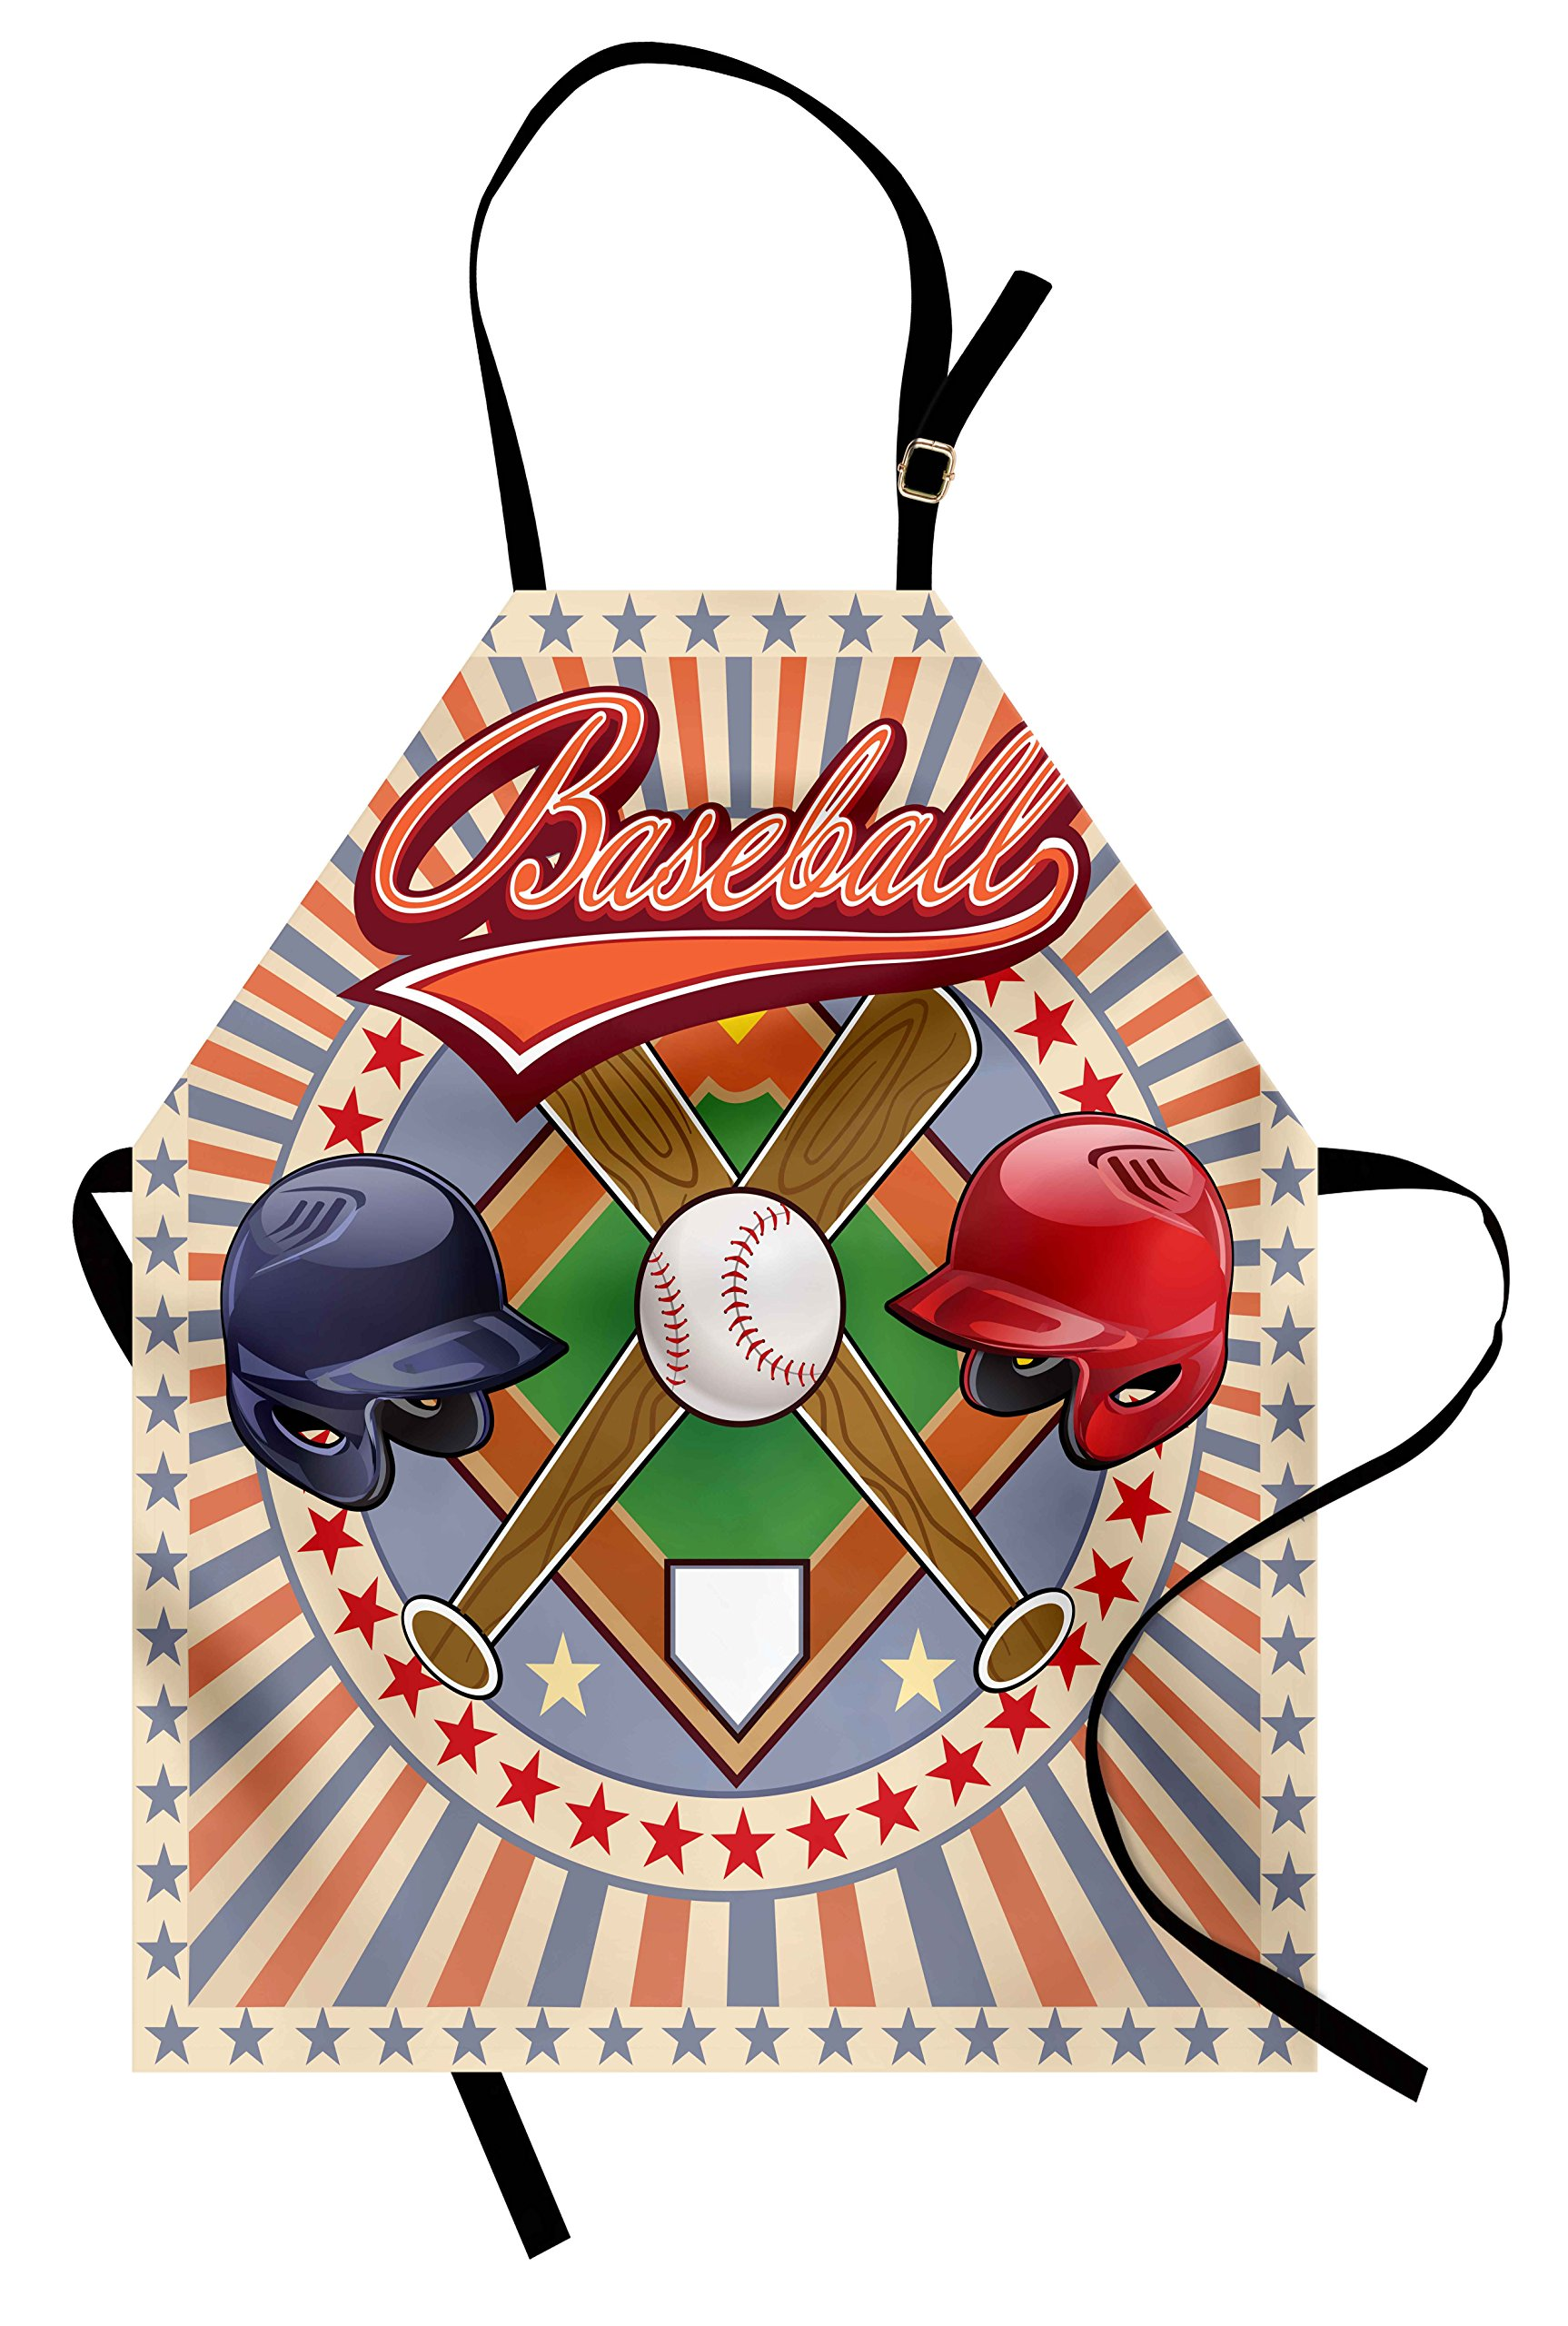 Ambesonne Baseball Apron, Retro Pop Art Baseball Logo with Vertical Striped Setting Bat and Ball Game Print, Unisex Kitchen Bib Apron with Adjustable Neck for Cooking Baking Gardening, Multicolor